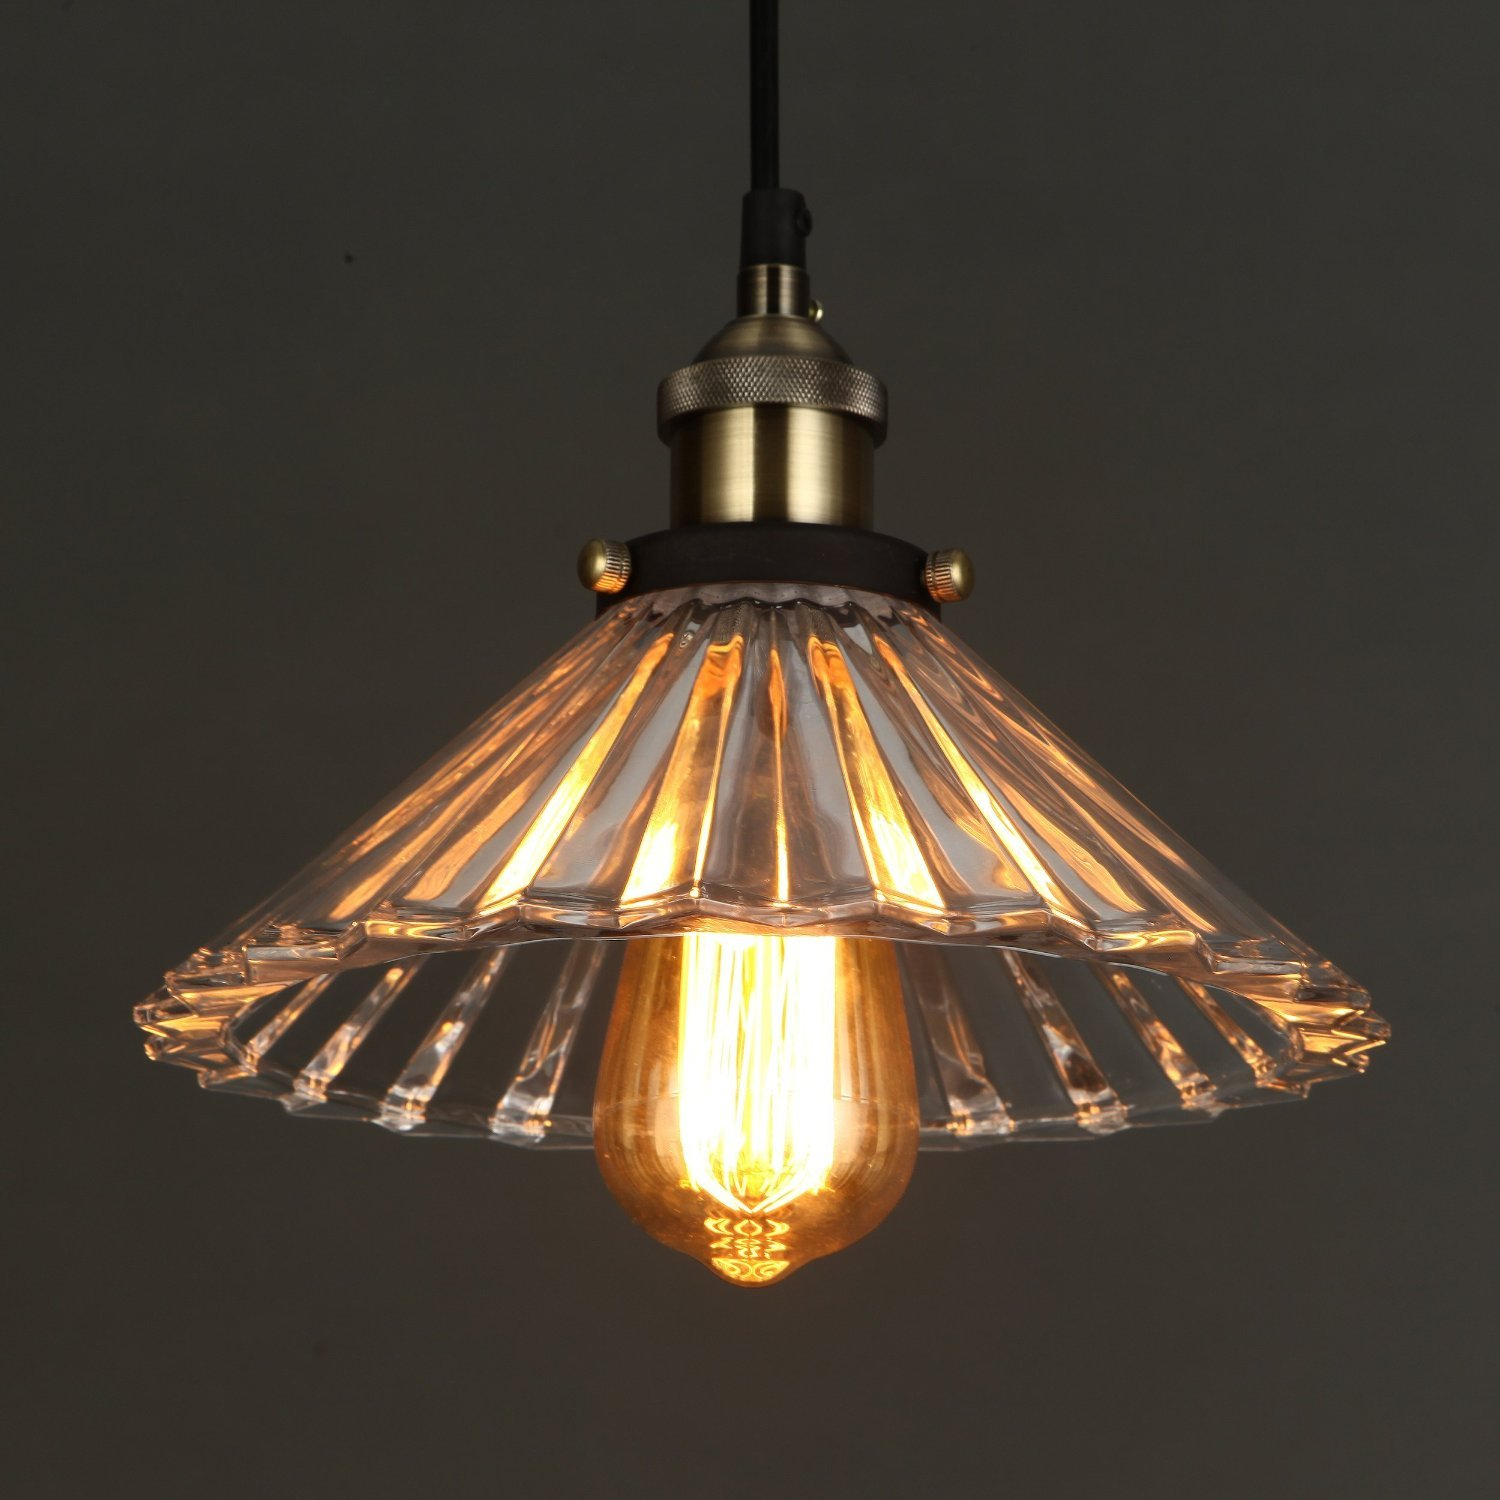 ONEPRE Vintage Modern Glass Hanging Lighting Pendant Light For Kitchen  Island Living Room Dining Room Bedroom , Antique Lamp Holder: Amazon.co.uk:  Lighting Part 52